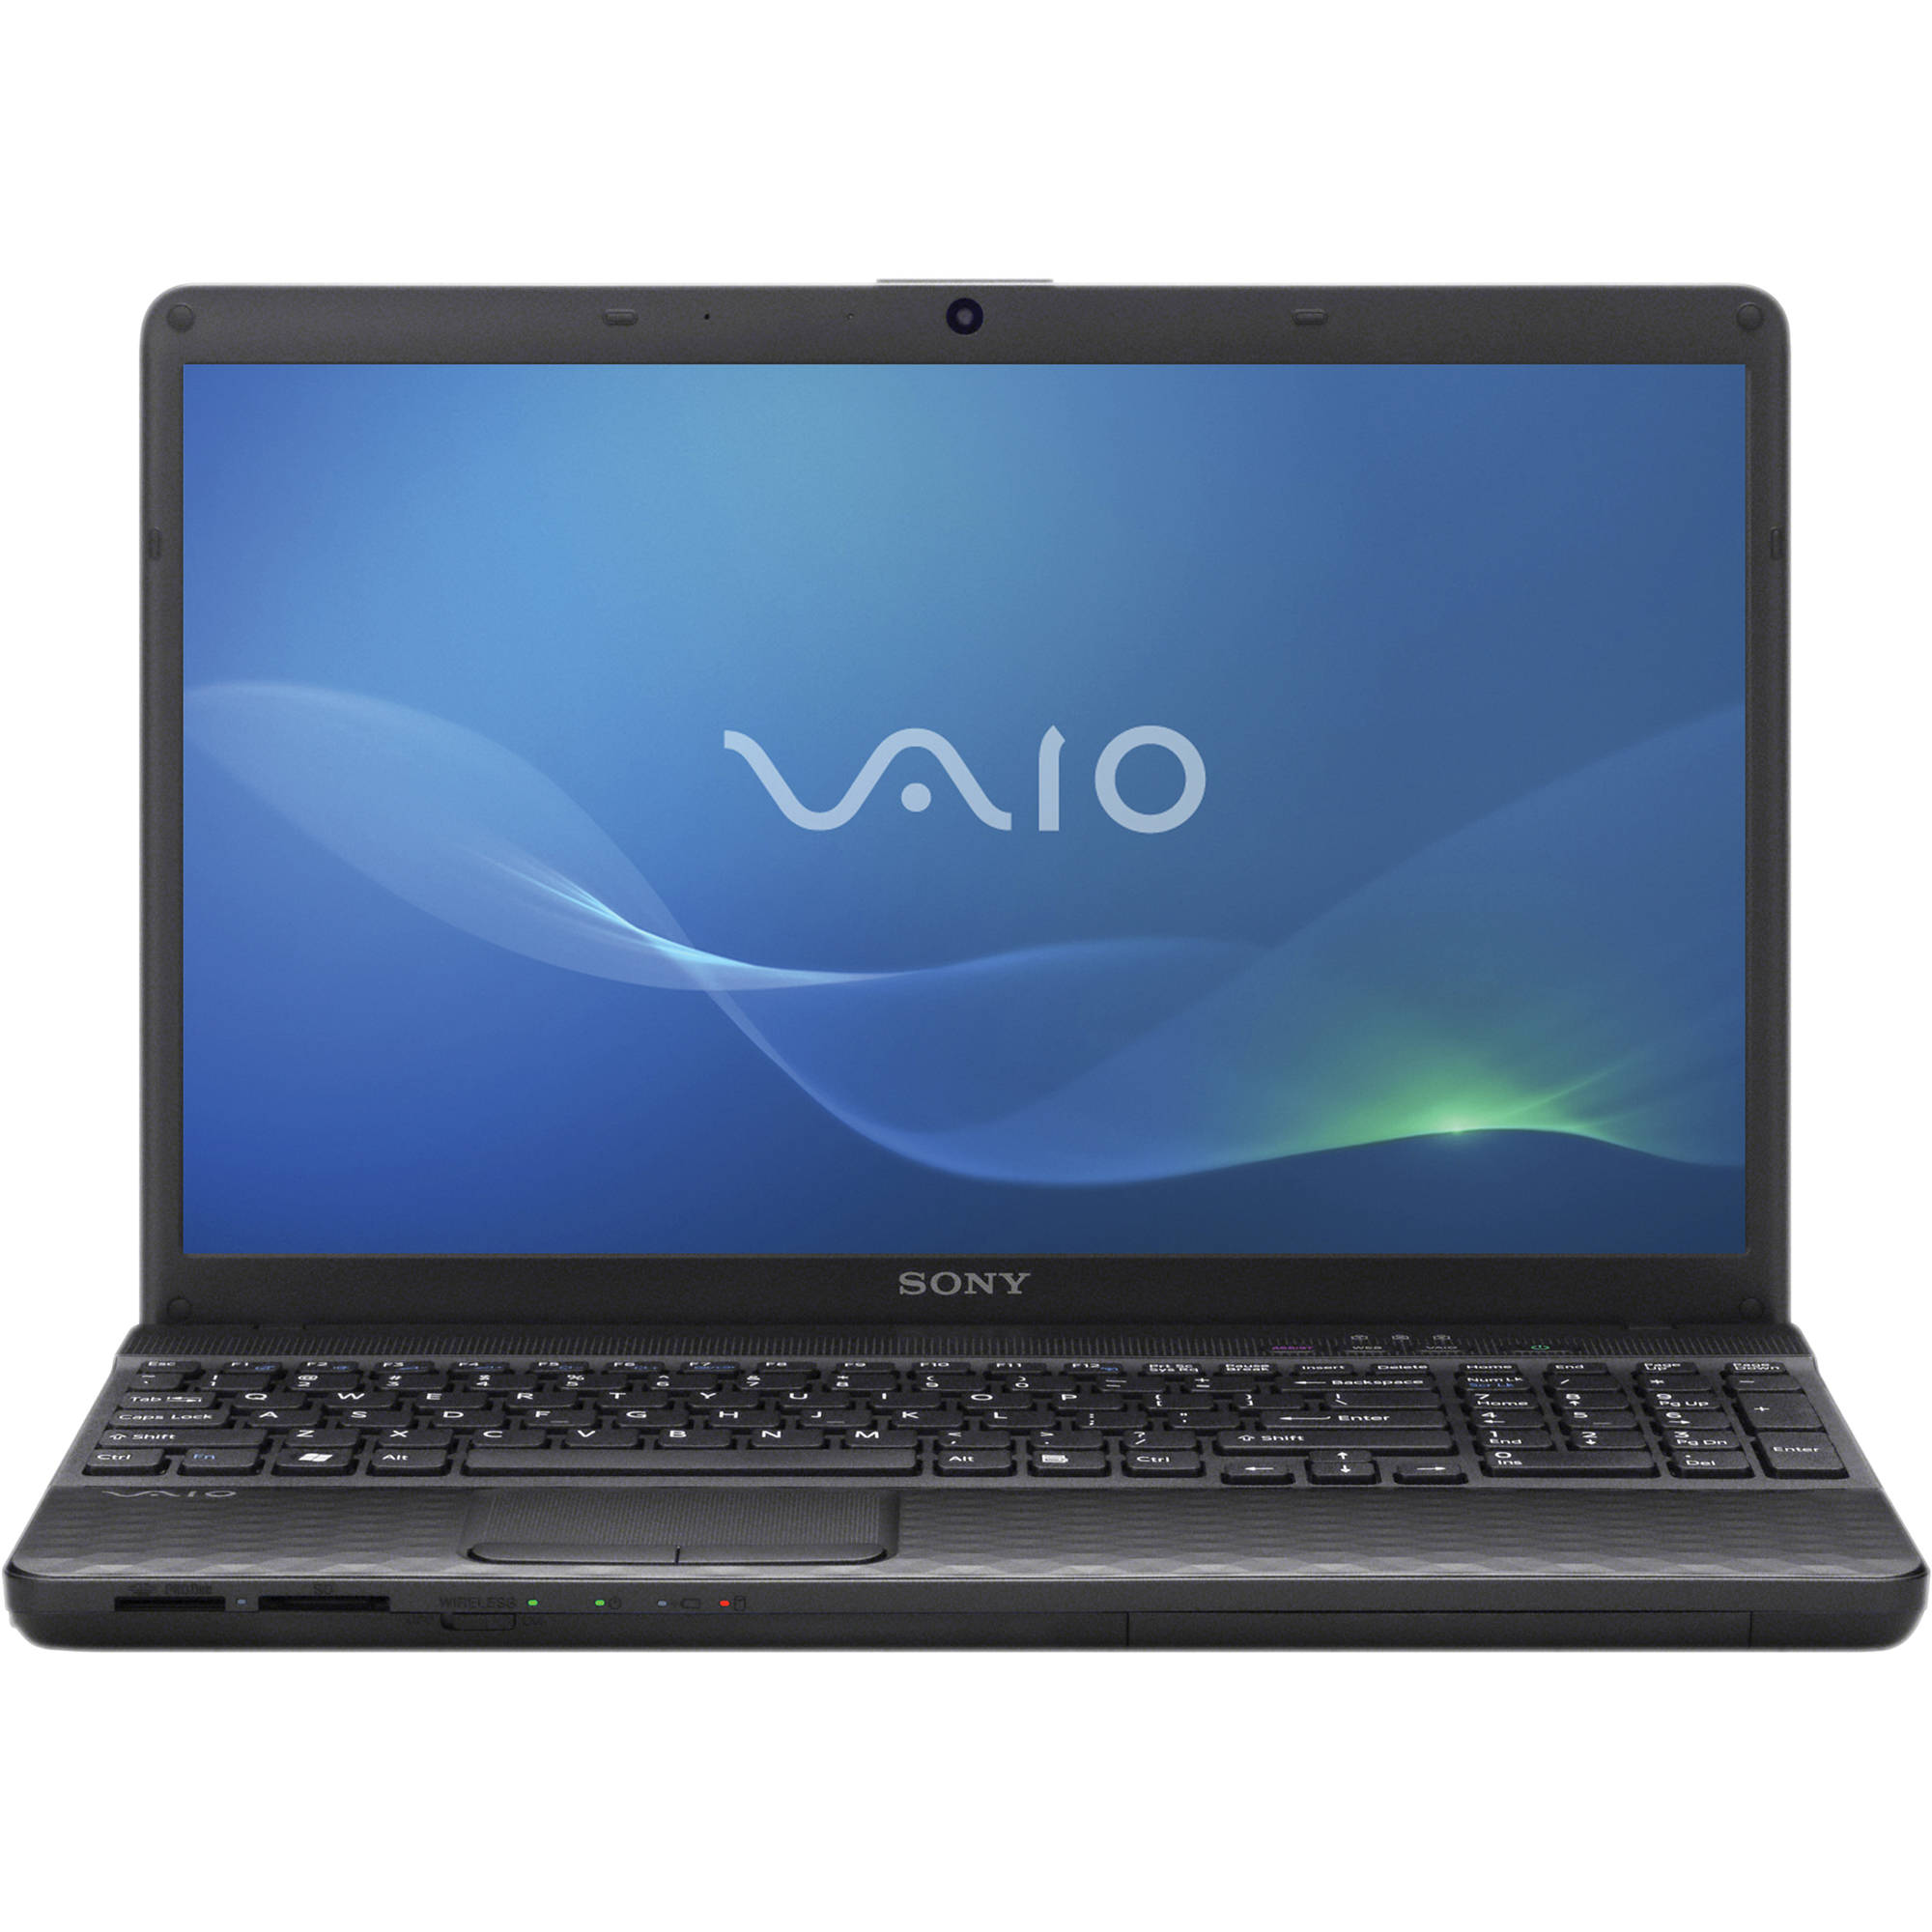 Sony Vaio VPCEL13FX Hitachi ODD Driver Windows XP